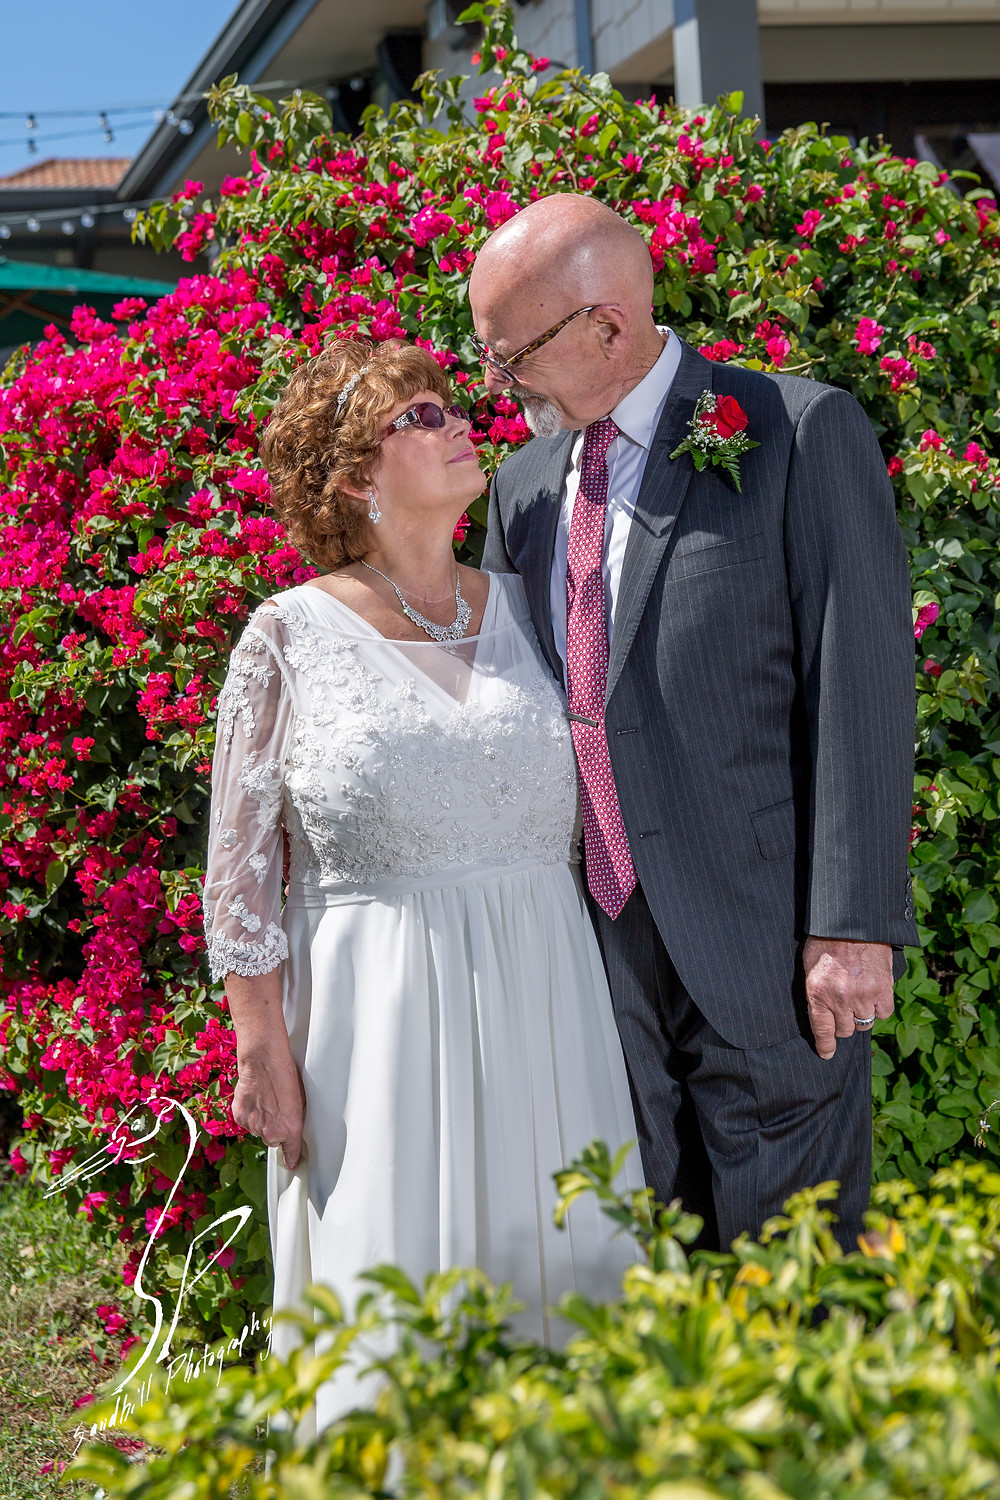 Anna Maria Oyster Bar Wedding Photography Bride Groom outside pink flowers outside sunny